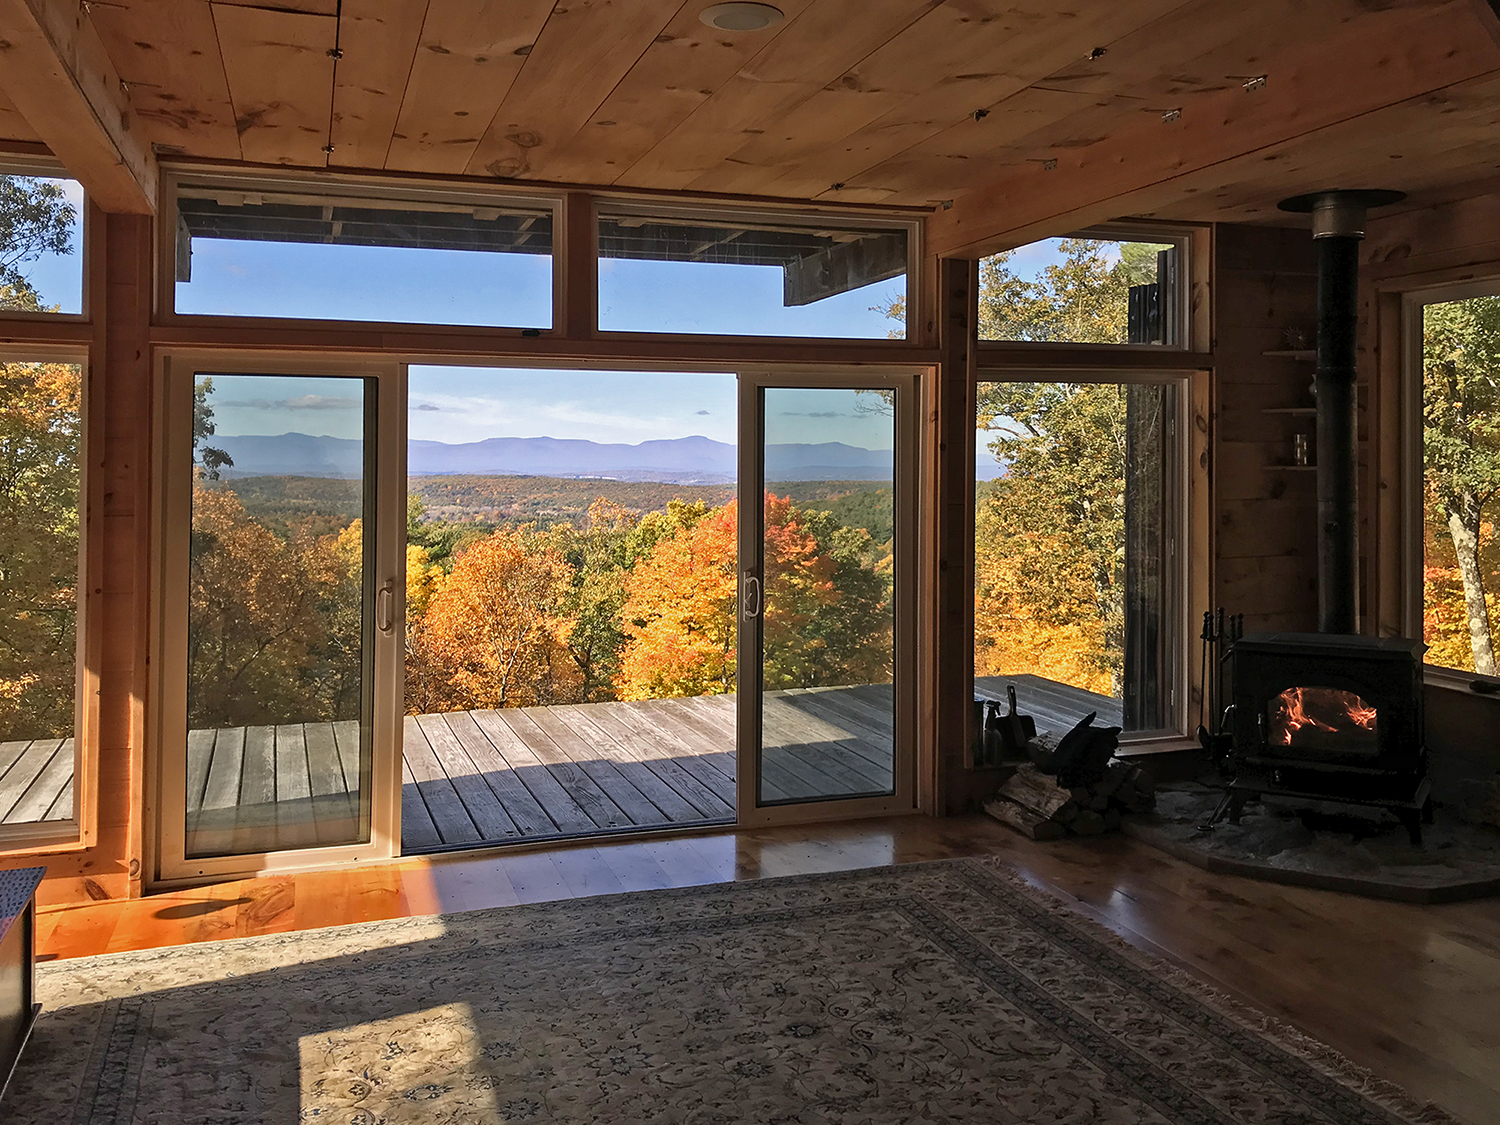 View of the Catskill Mountains from the inside of the sportsman's cabin